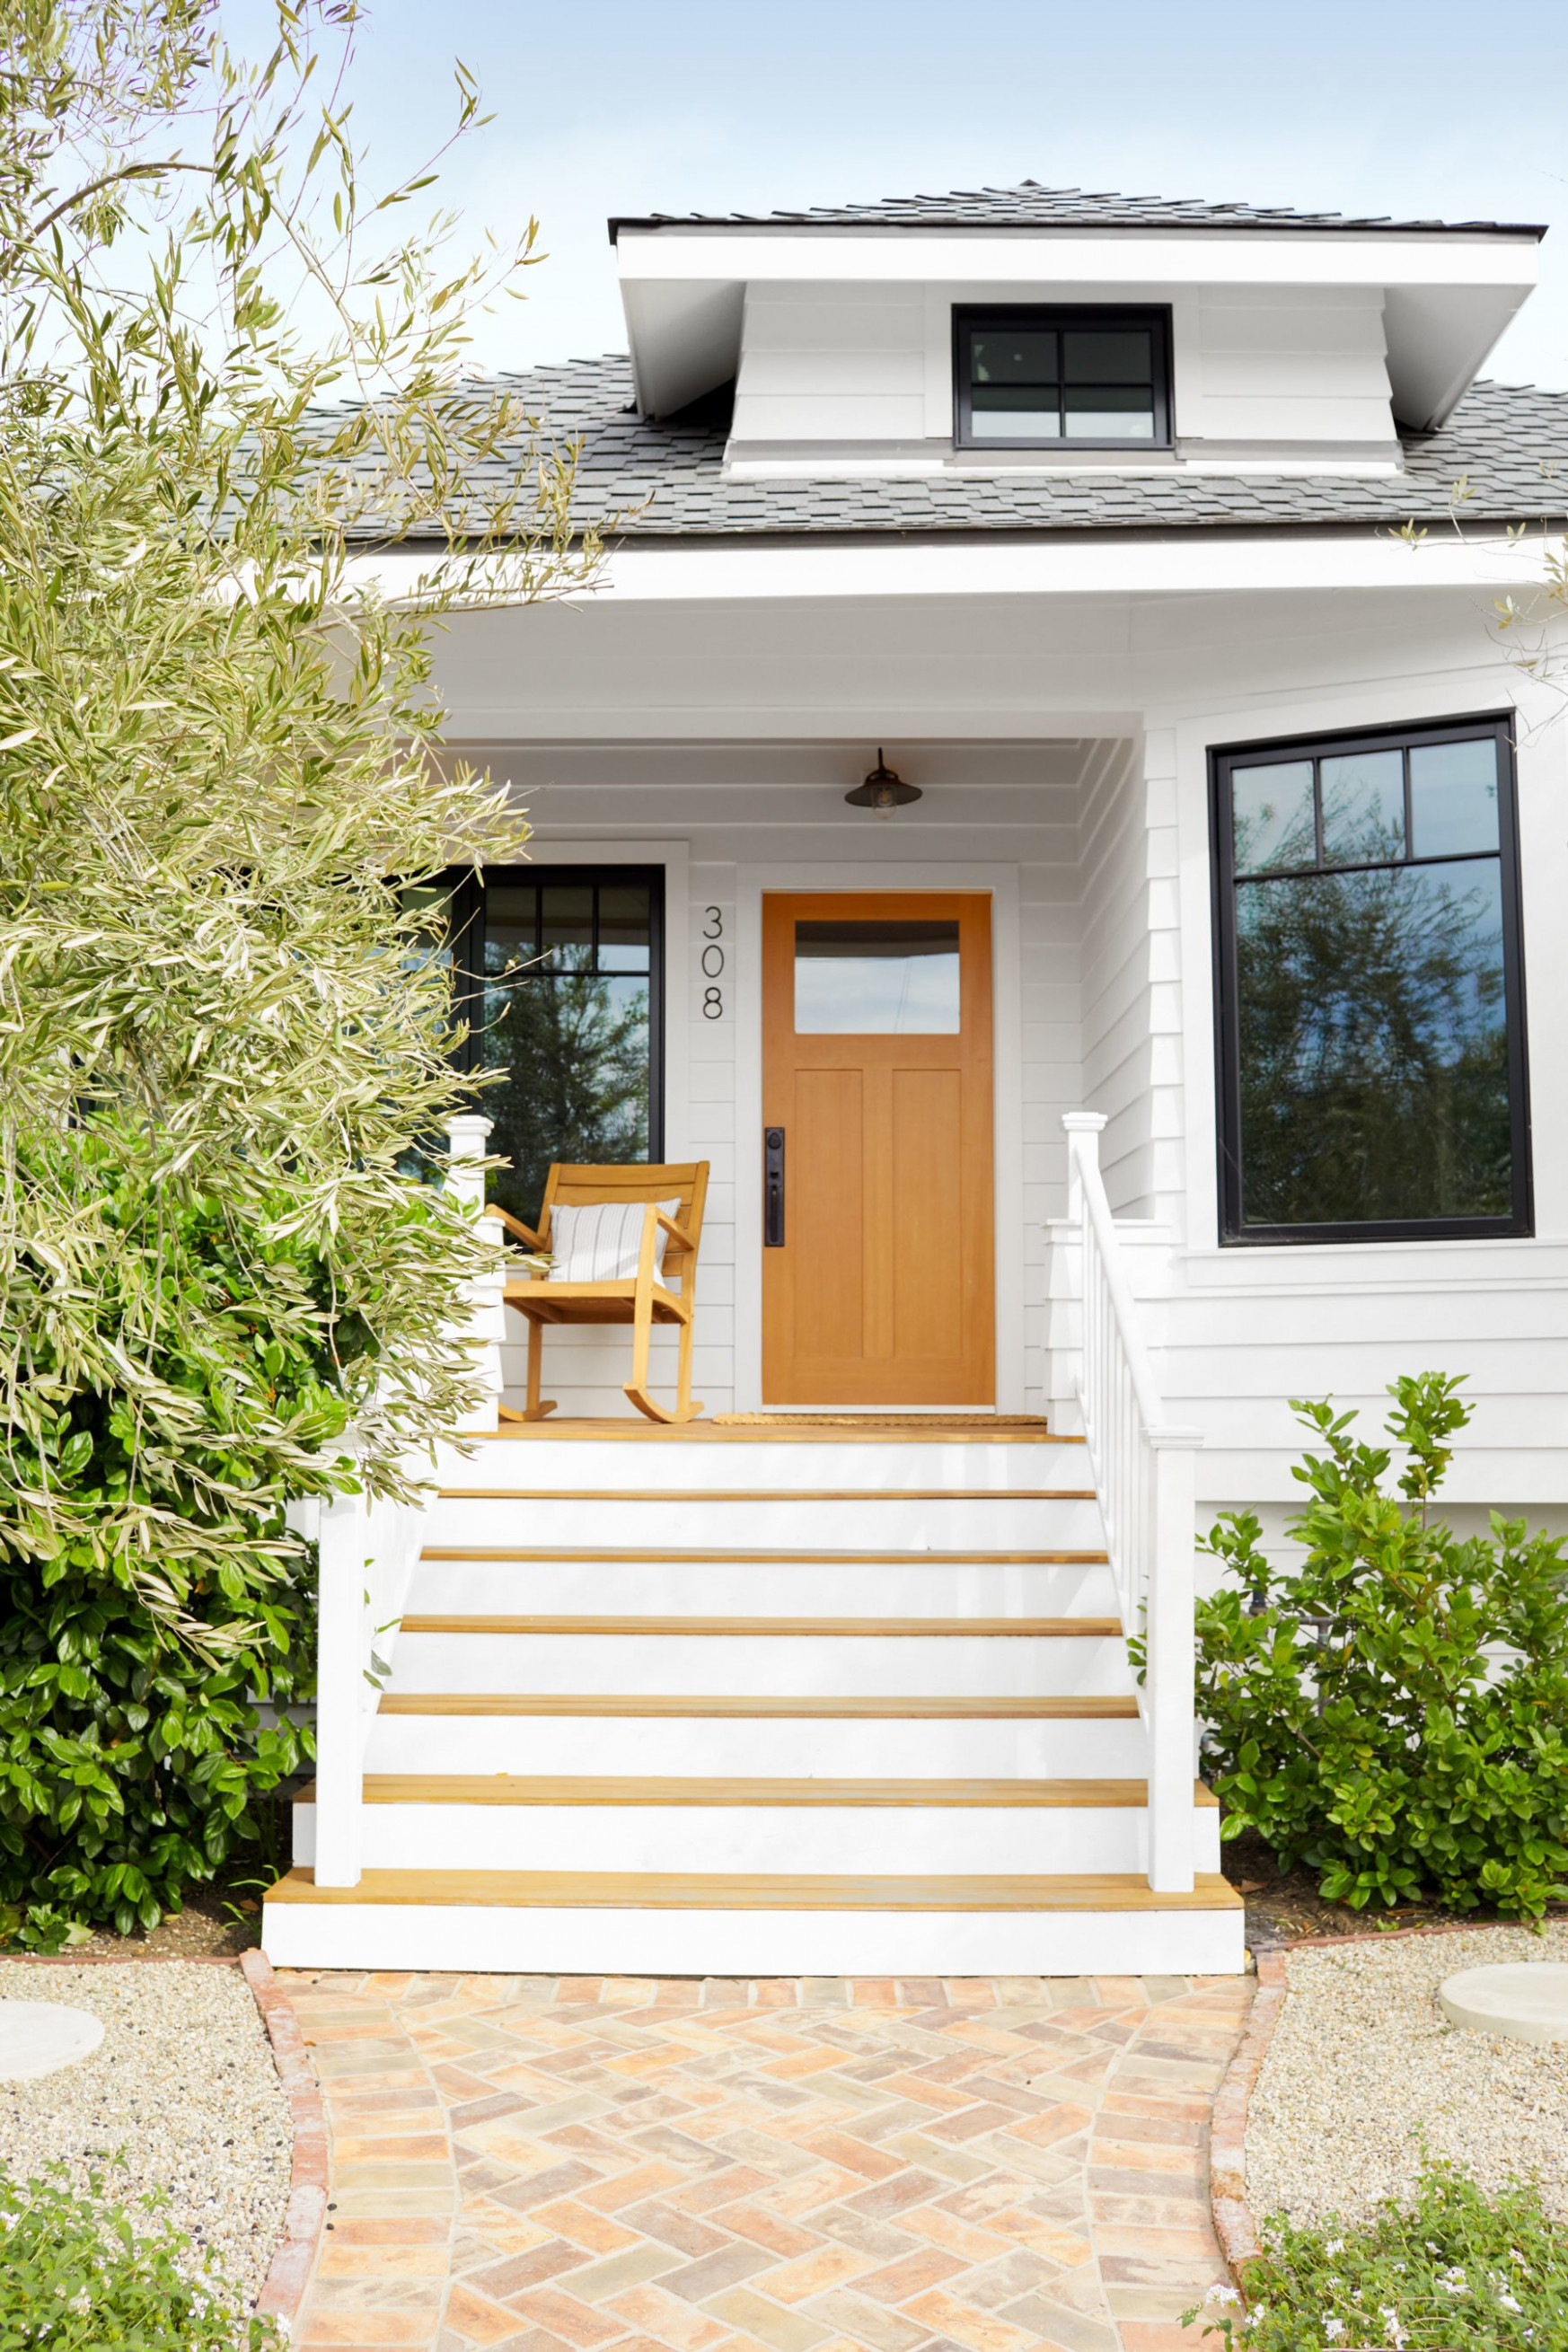 Before And After: Home Exterior Makeovers | Better Homes ..